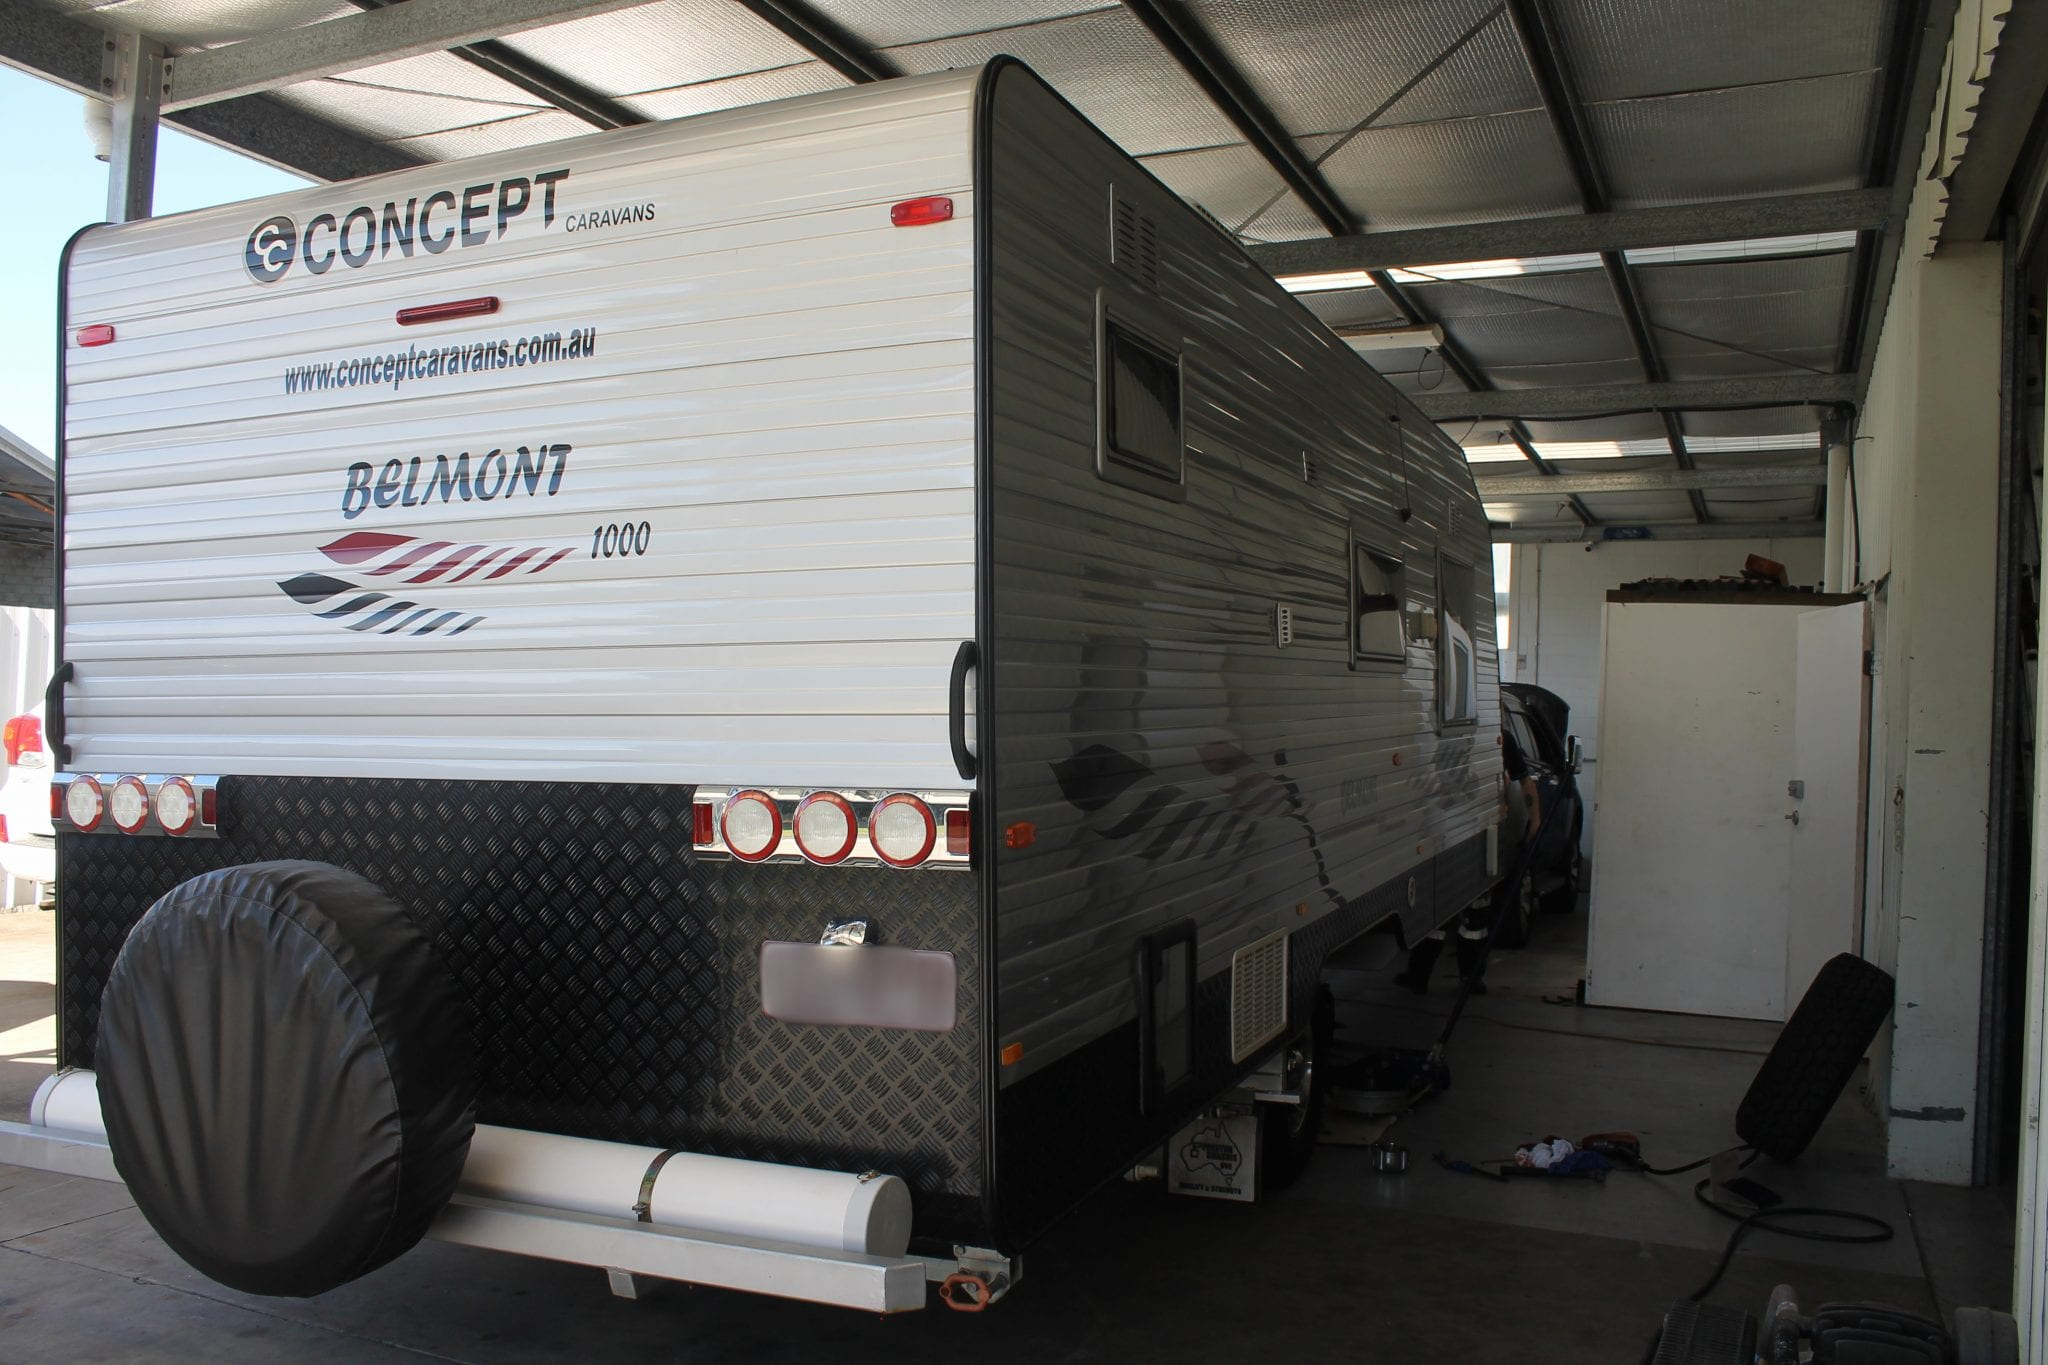 ford everest and concept caravan 12v fitout | accelerate auto